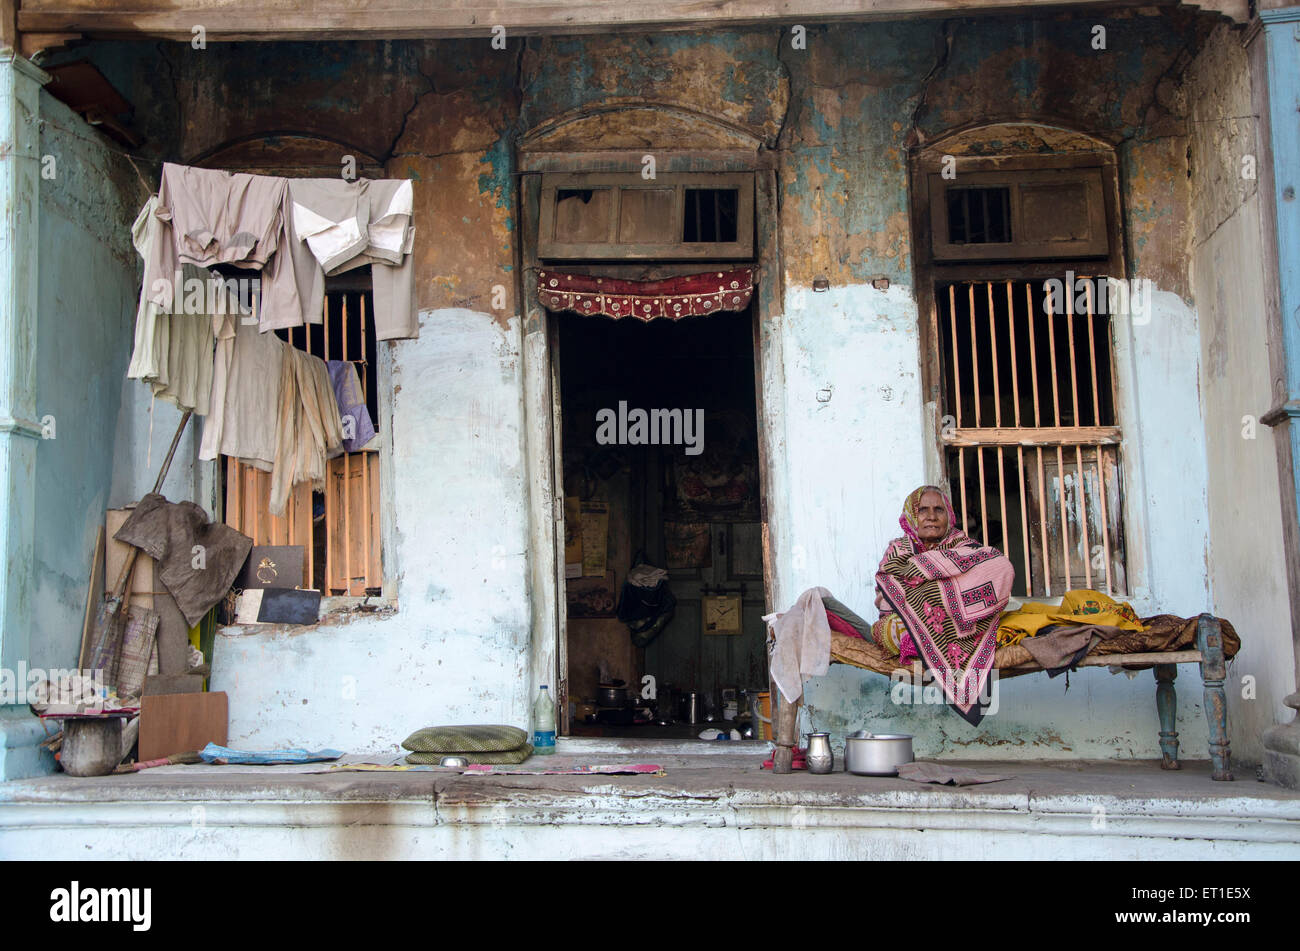 woman sitting in gallery of home Ahmedabad Gujarat India Asia - Stock Image